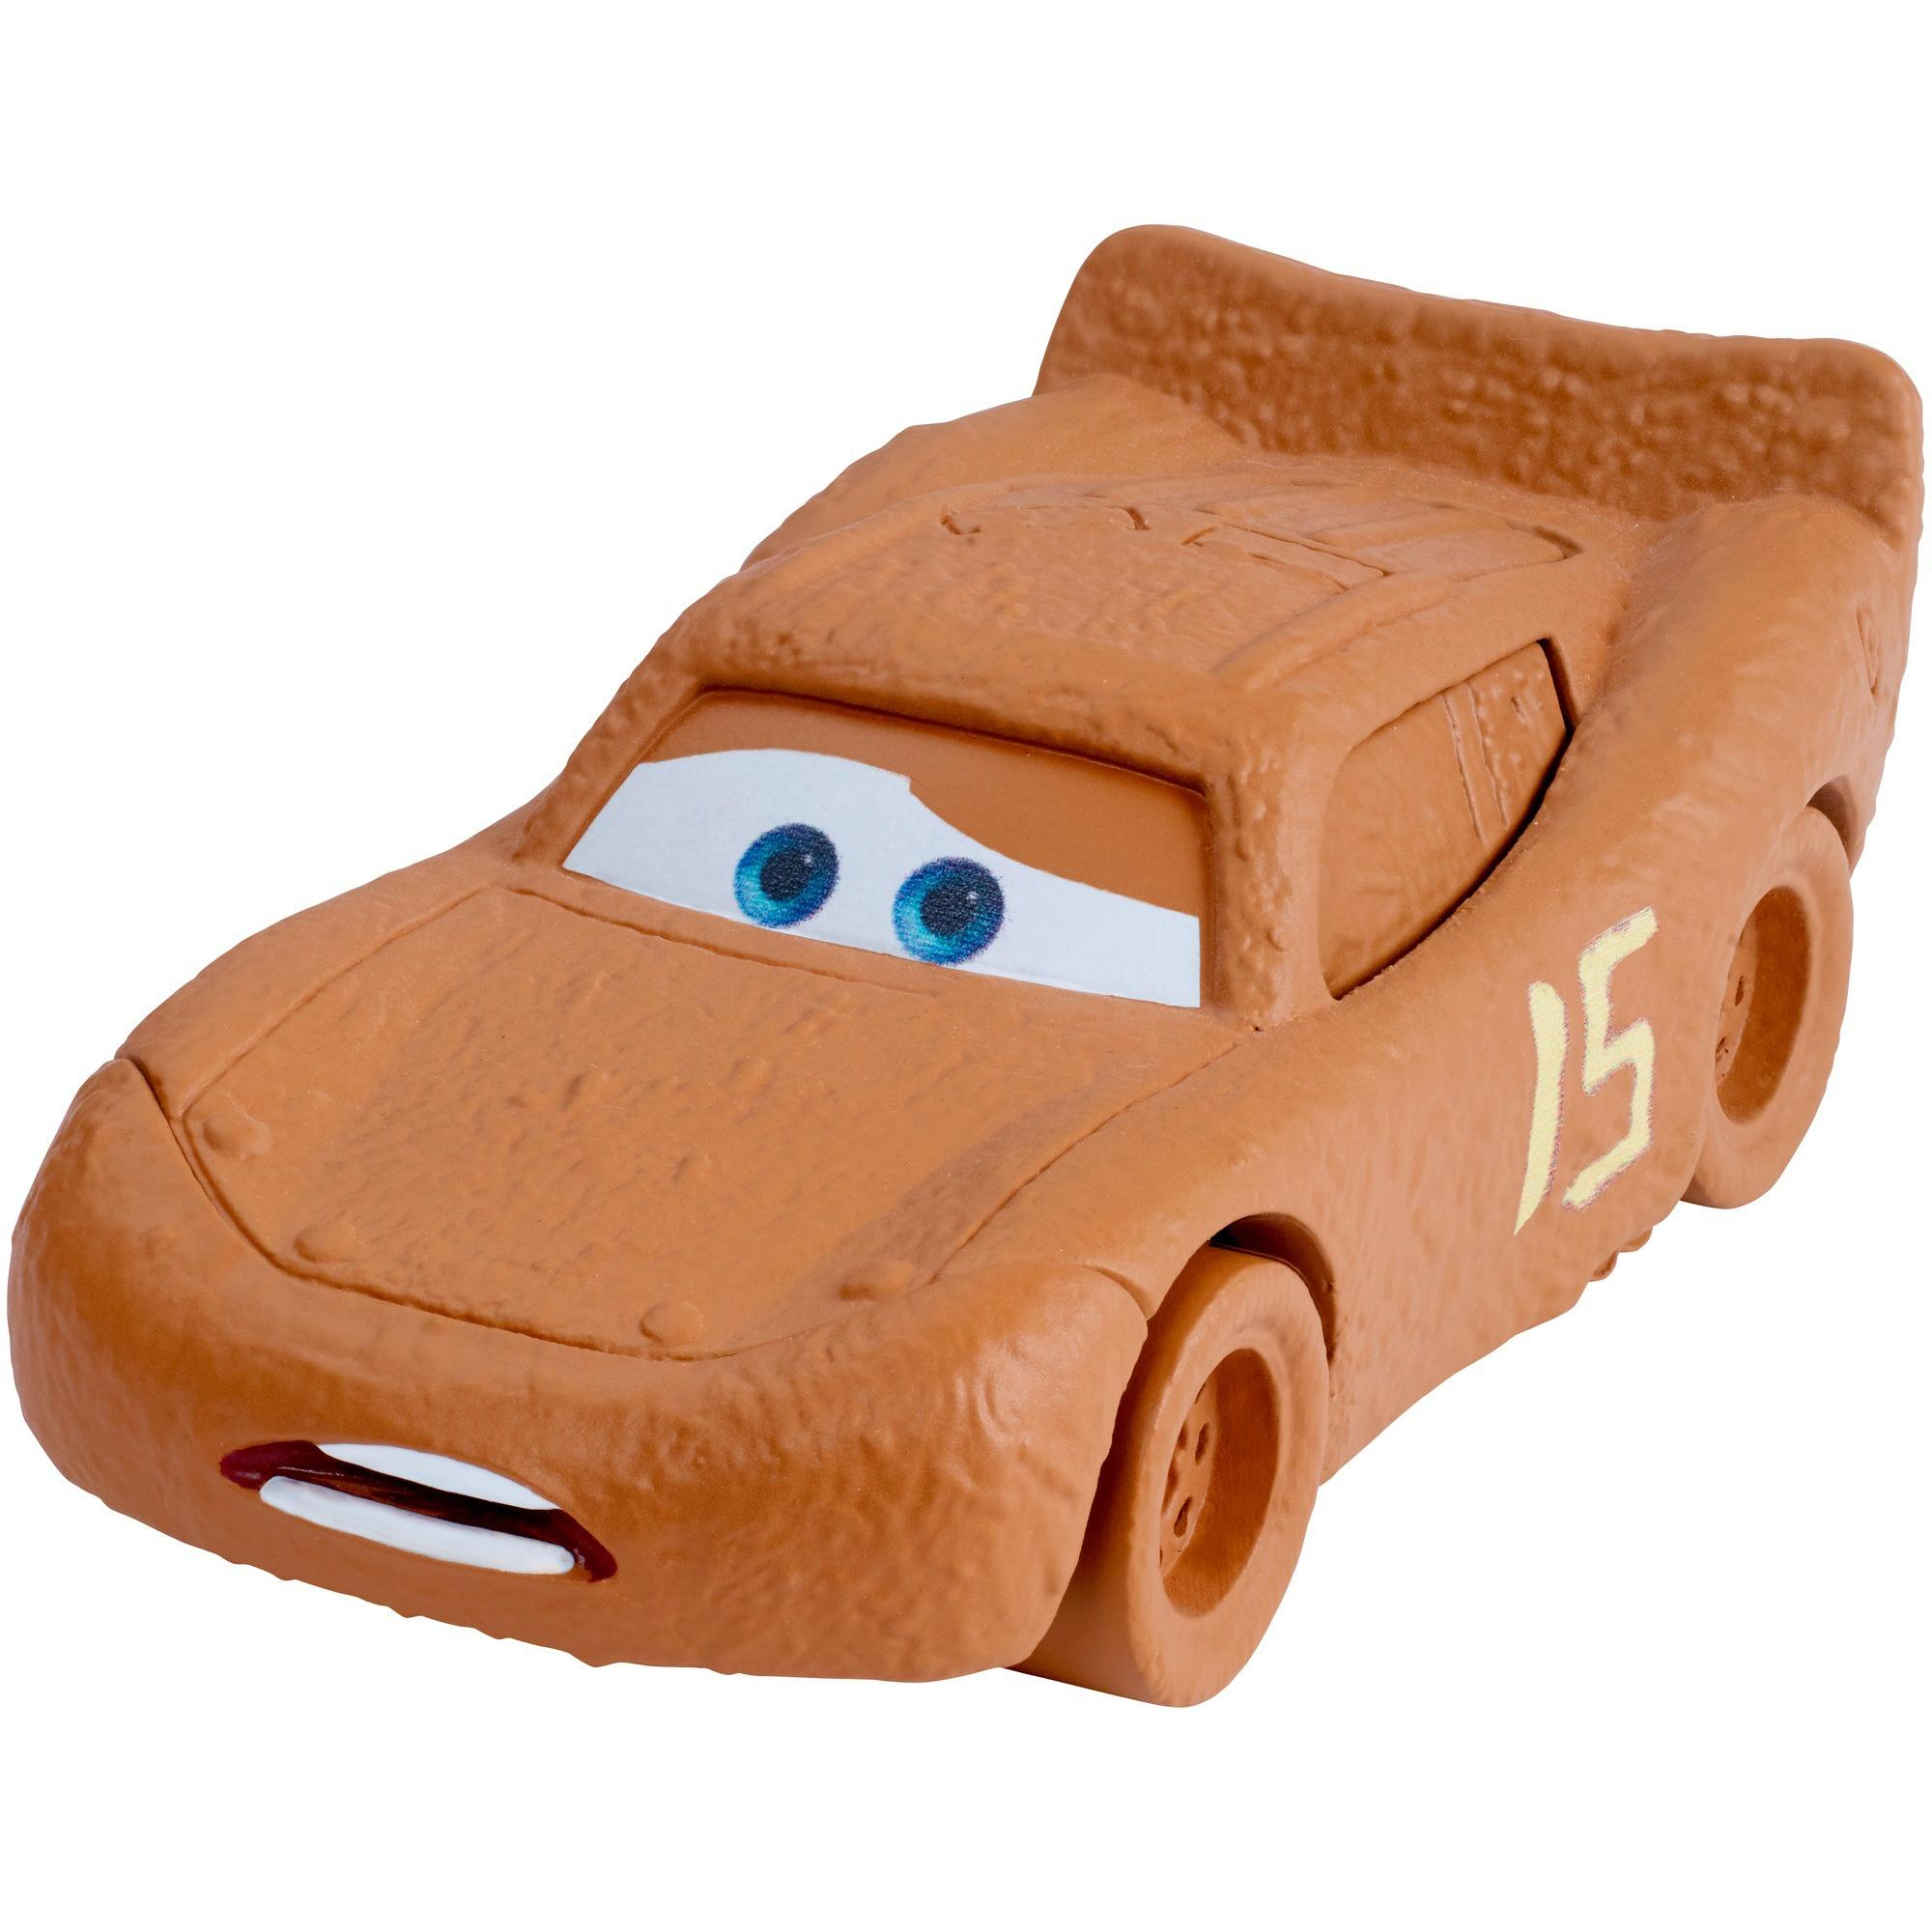 Disney/Pixar Cars 3 Lightning McQueen As Chester Whipplefilter Die-Cast Vehicle